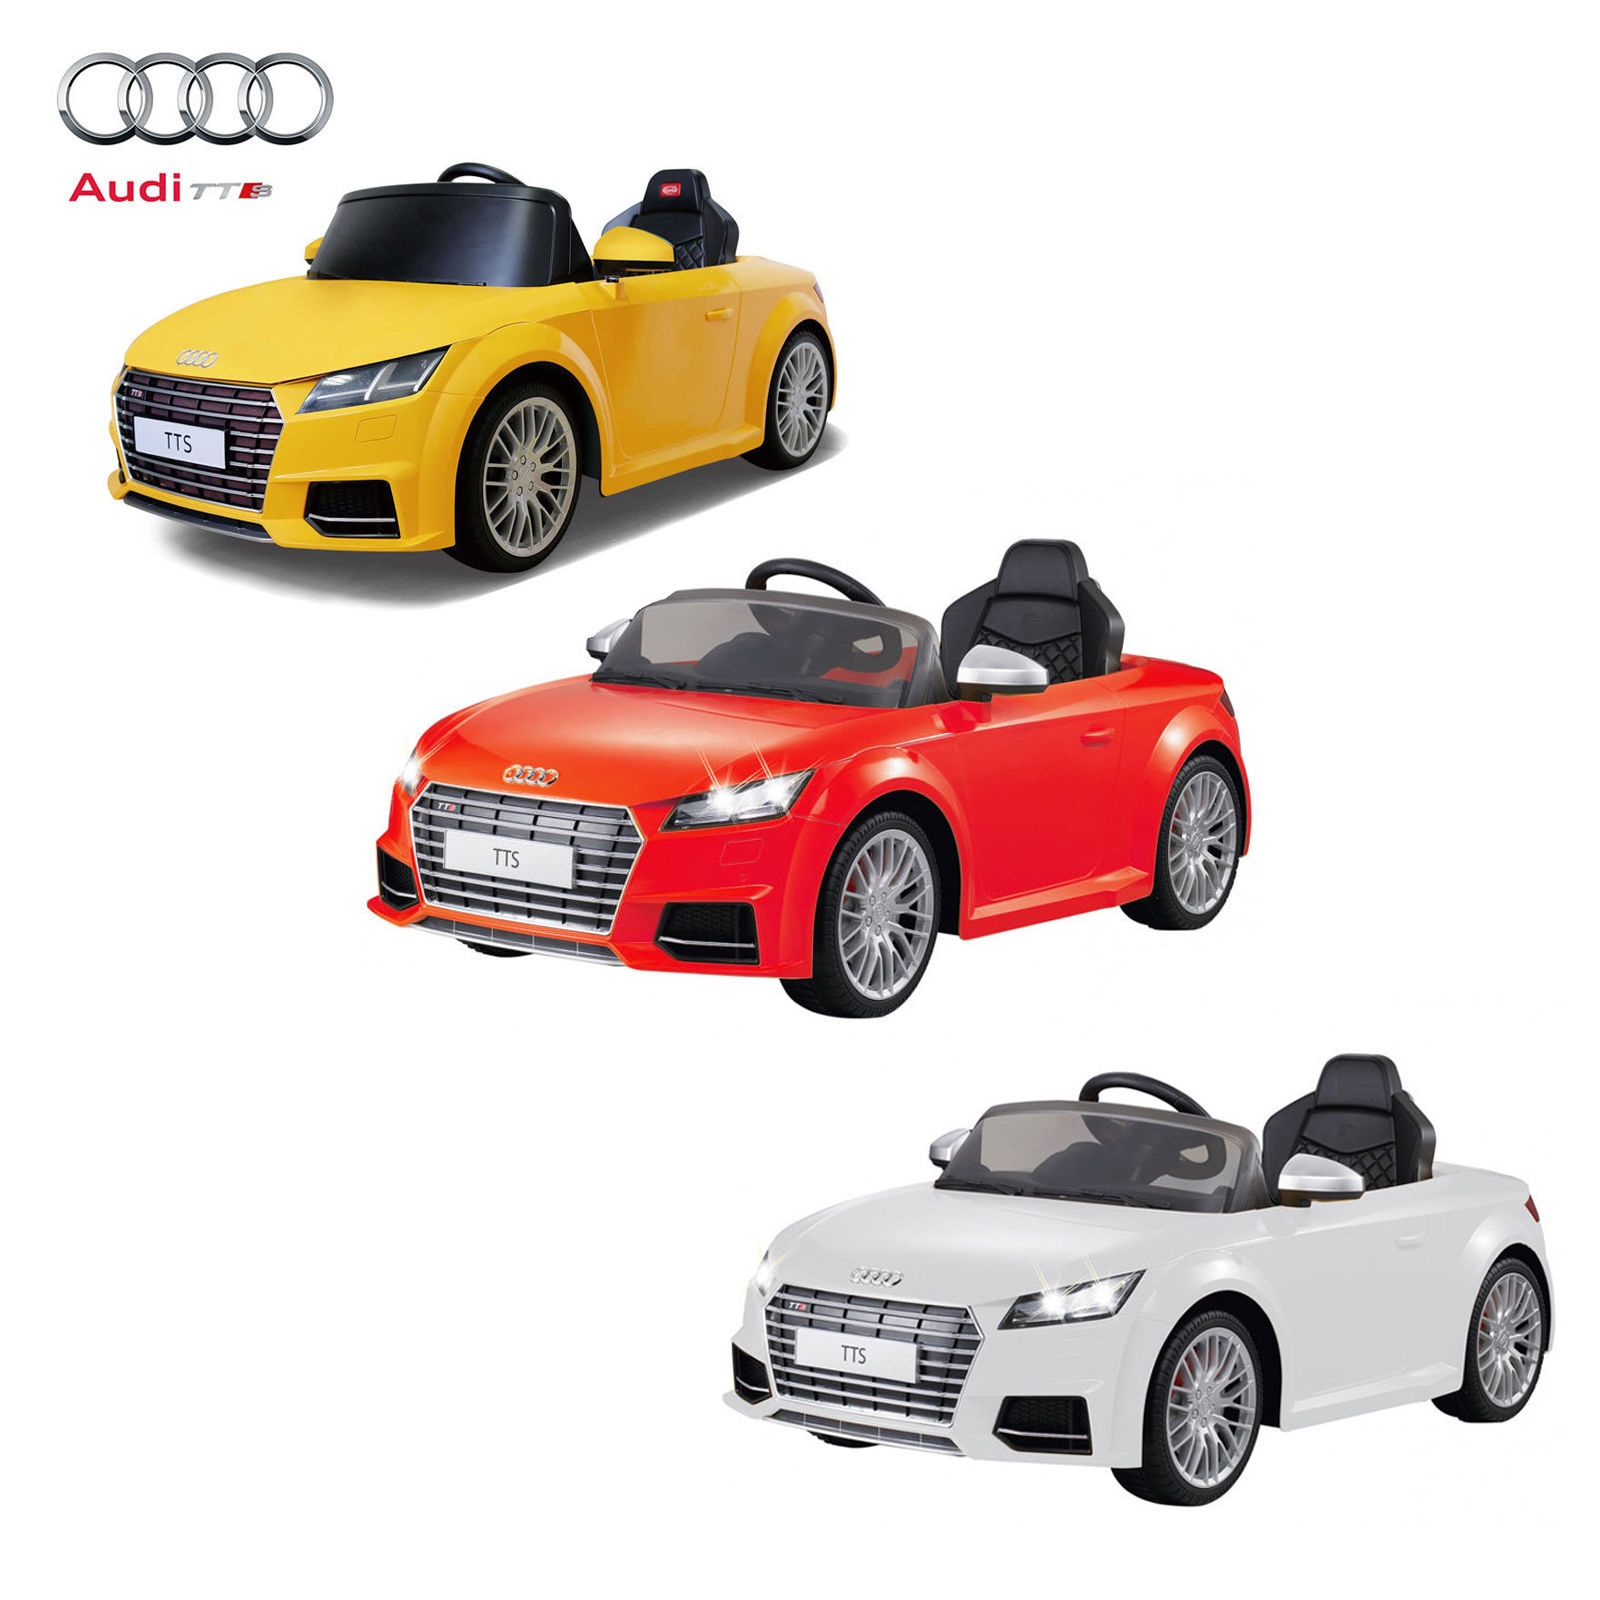 battery operated car audi tts roadster zp8006 red yellow white